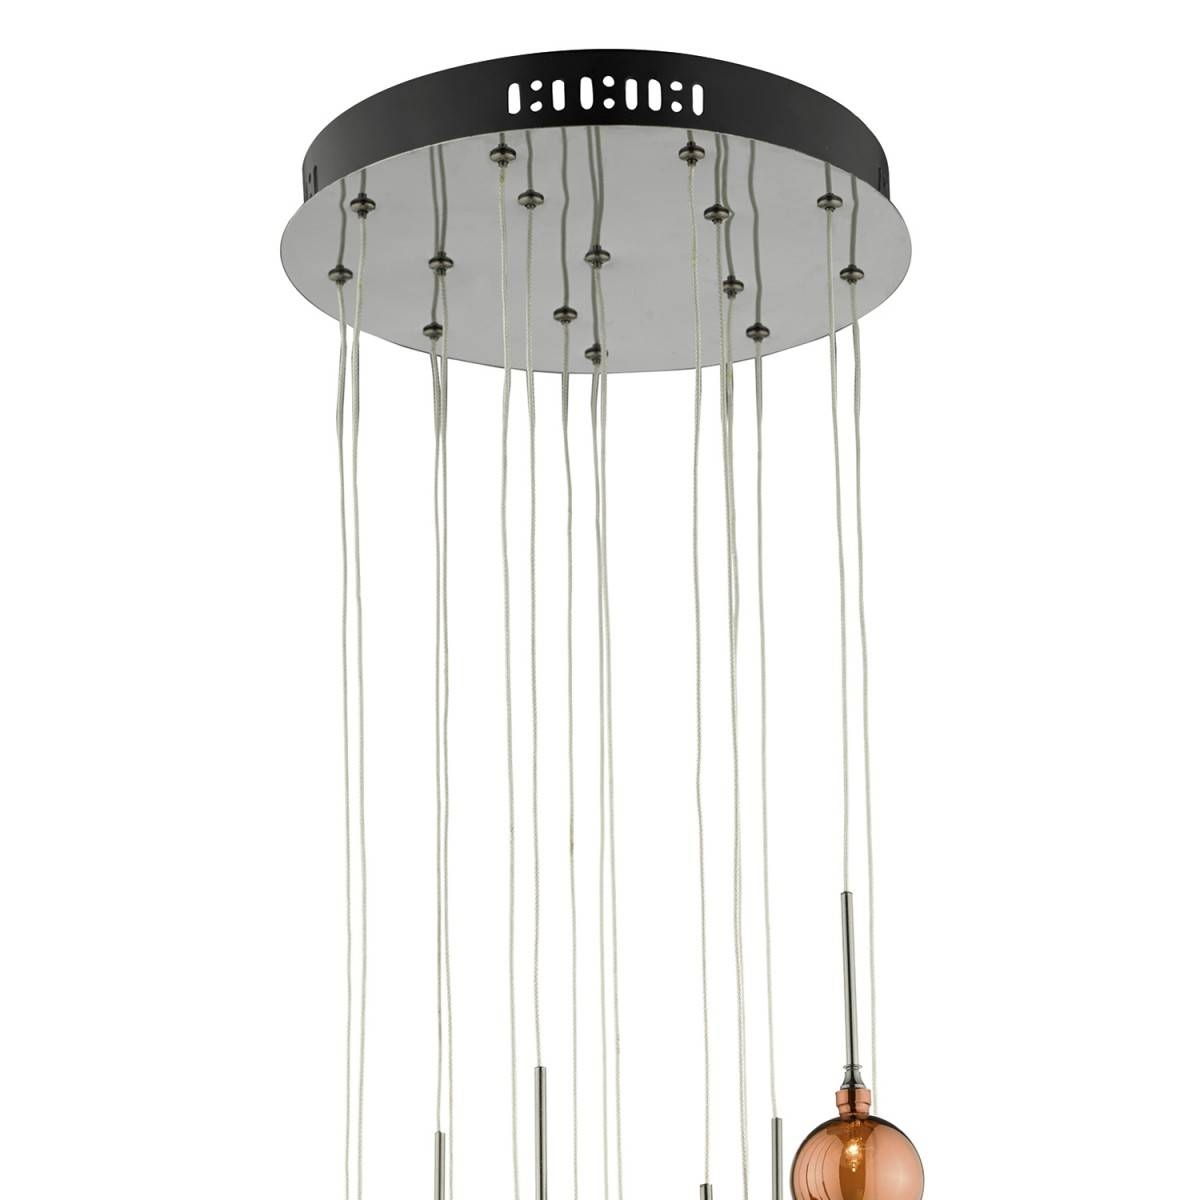 15lt G4 Spiral With Copper, Dark Copper And Bronze Glass15 Light With Regard To Pendant Lights For Ceiling Plate (View 5 of 15)